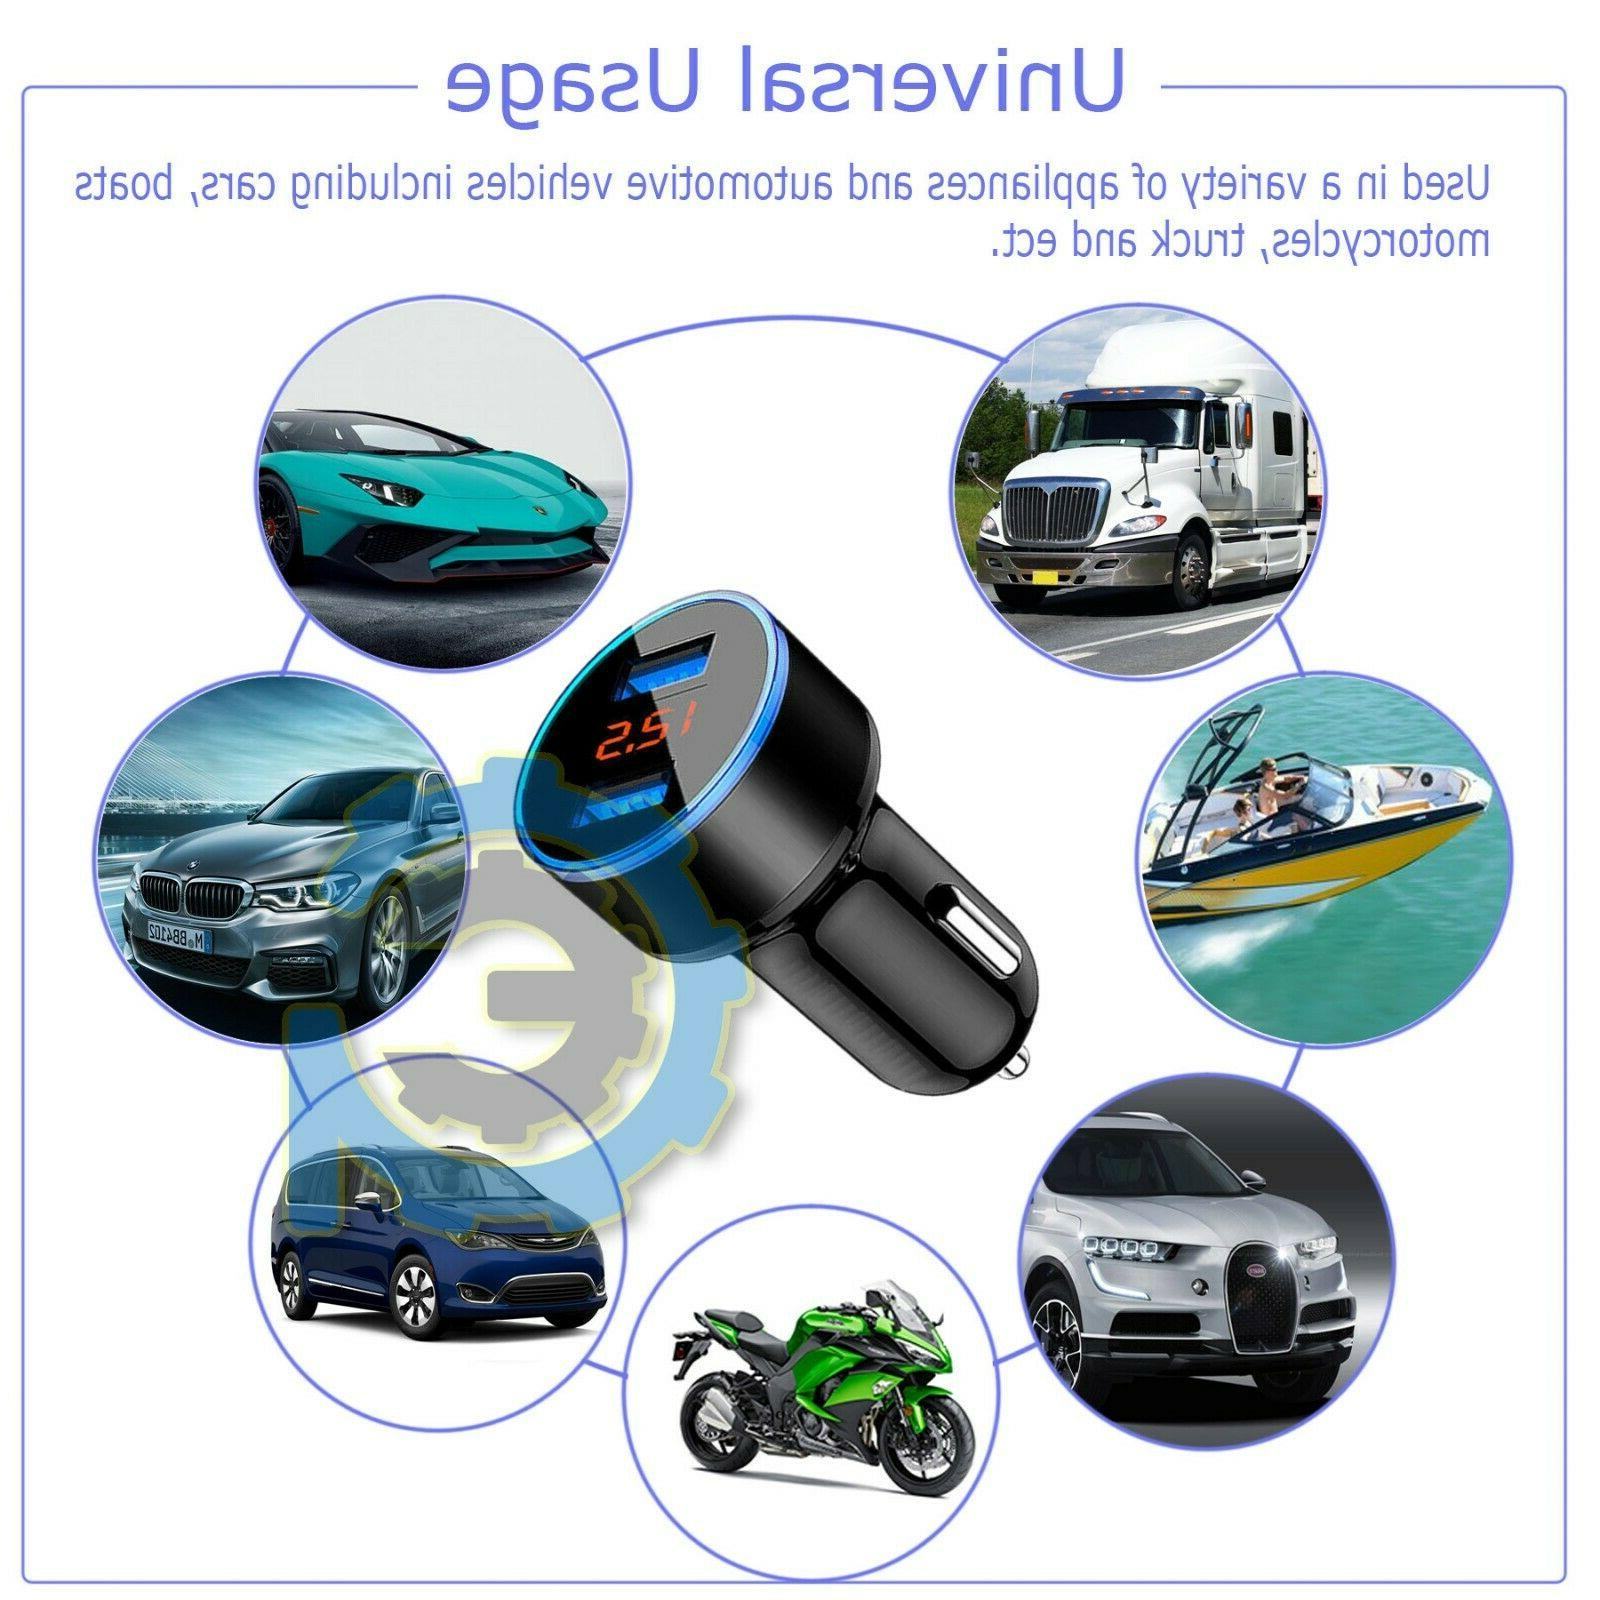 3.1A USB Dual Ports Car Charger 12V/24V Digital